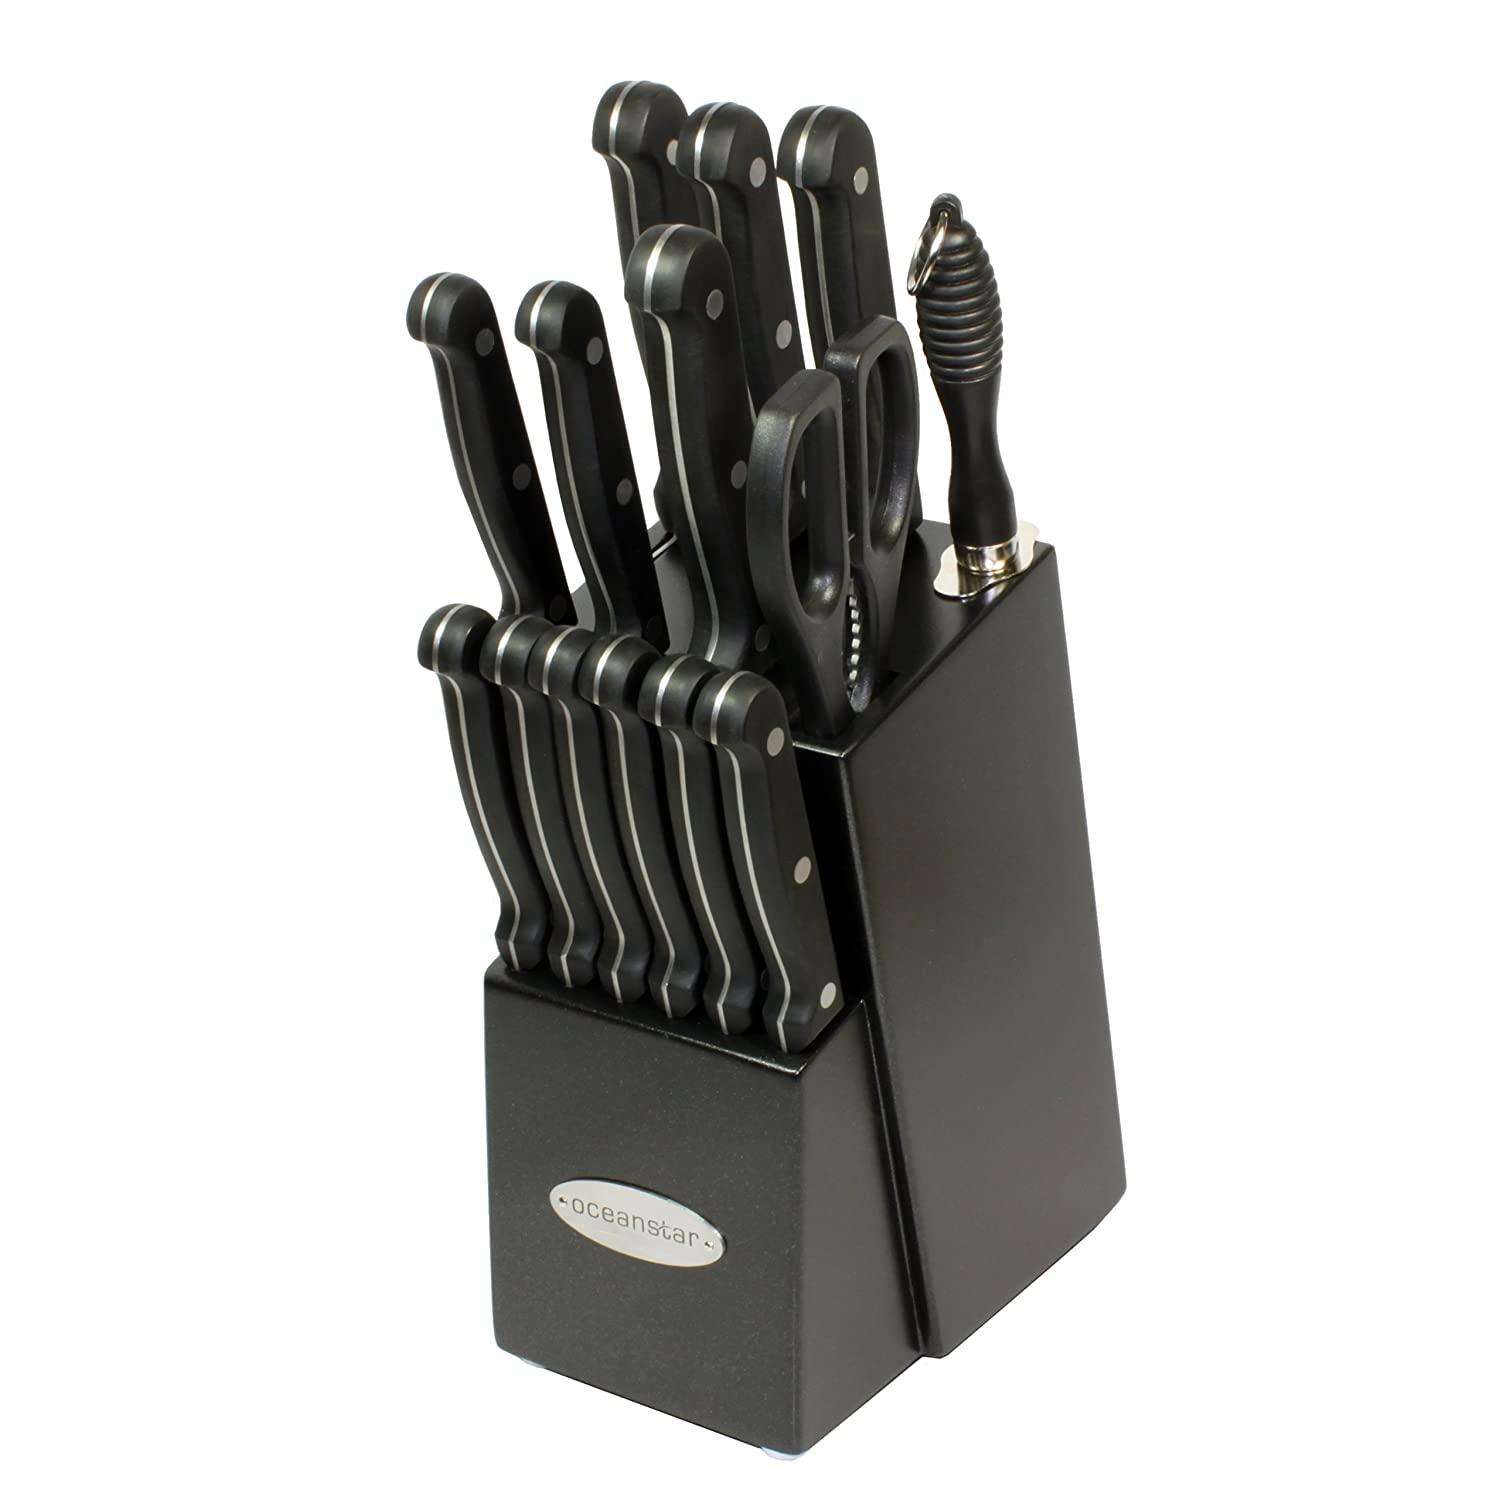 oceanstar ks1194 contemporary 15 piece knife set with